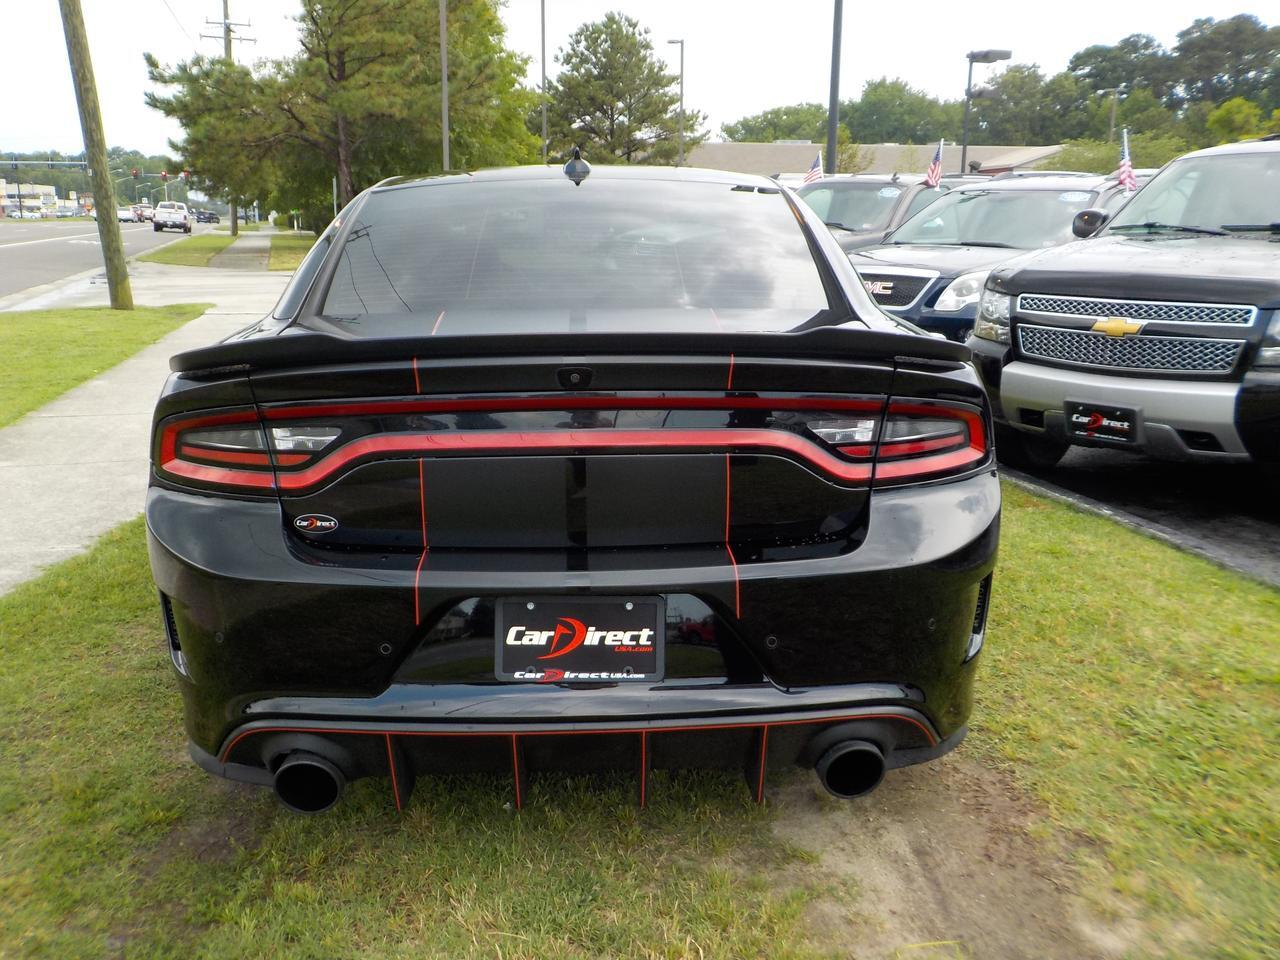 2016 DODGE CHARGER R/T SCAT PACK VENDETTA 392, REMOTE START, TINTED WINDOWS, SUNROOF, BACKUP CAMERA, NAVIGATION! Virginia Beach VA